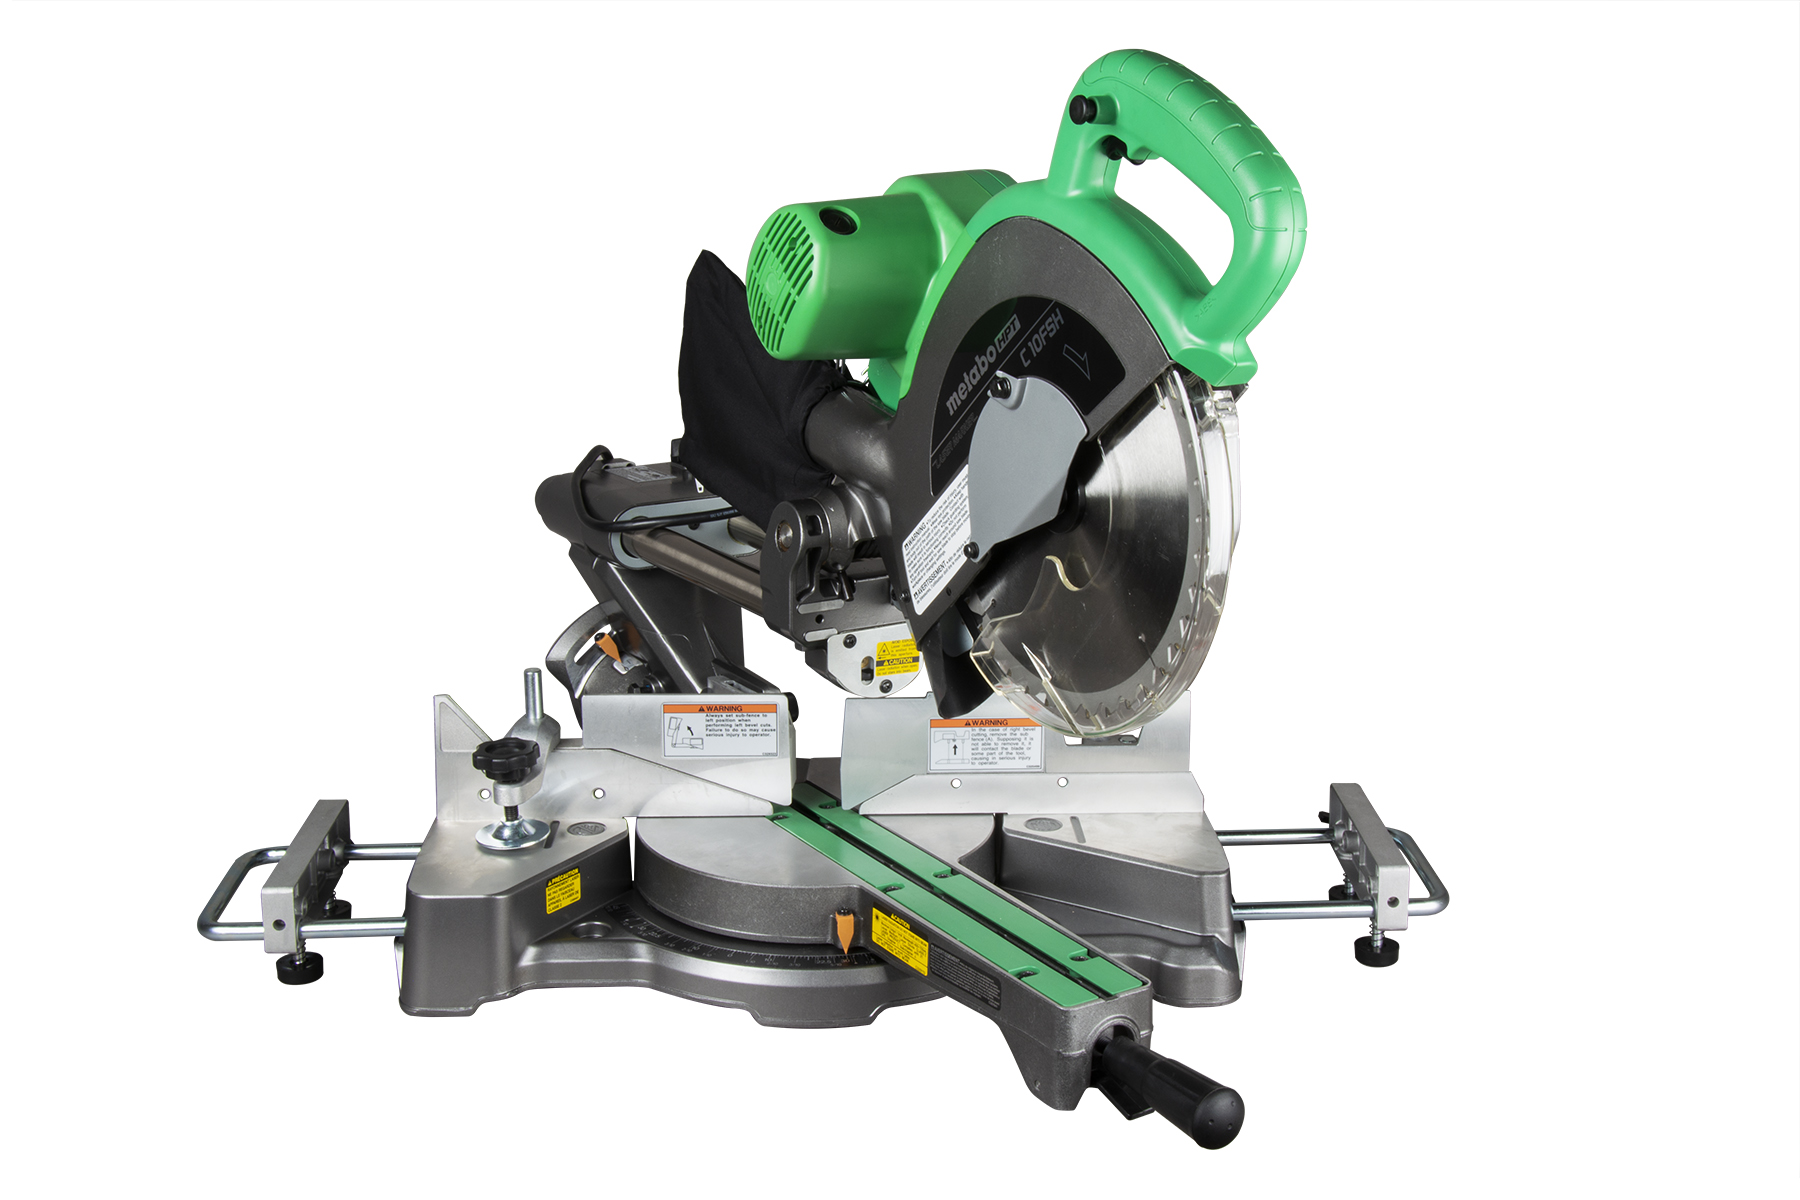 10 Sliding Dual Compound Miter Saw With Laser Marker C10fsh S Metabo Hpt